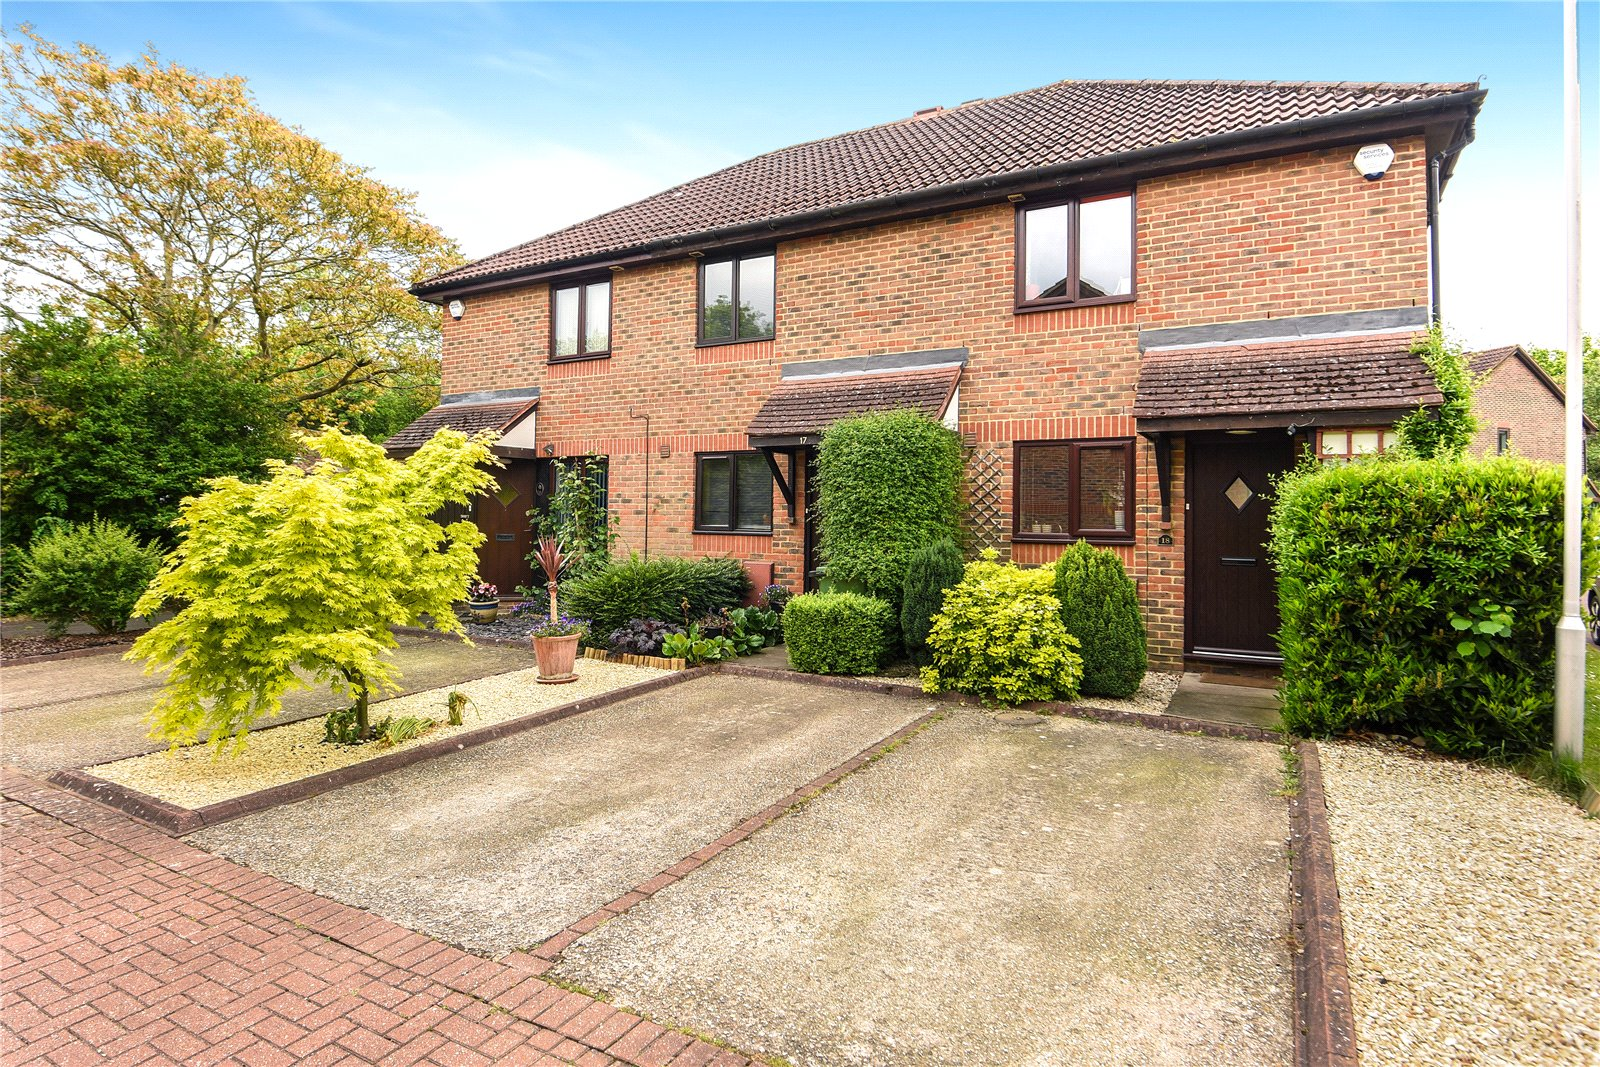 2 Bedrooms End Of Terrace House for sale in Barley Mead, Warfield, Bracknell, Berkshire, RG42